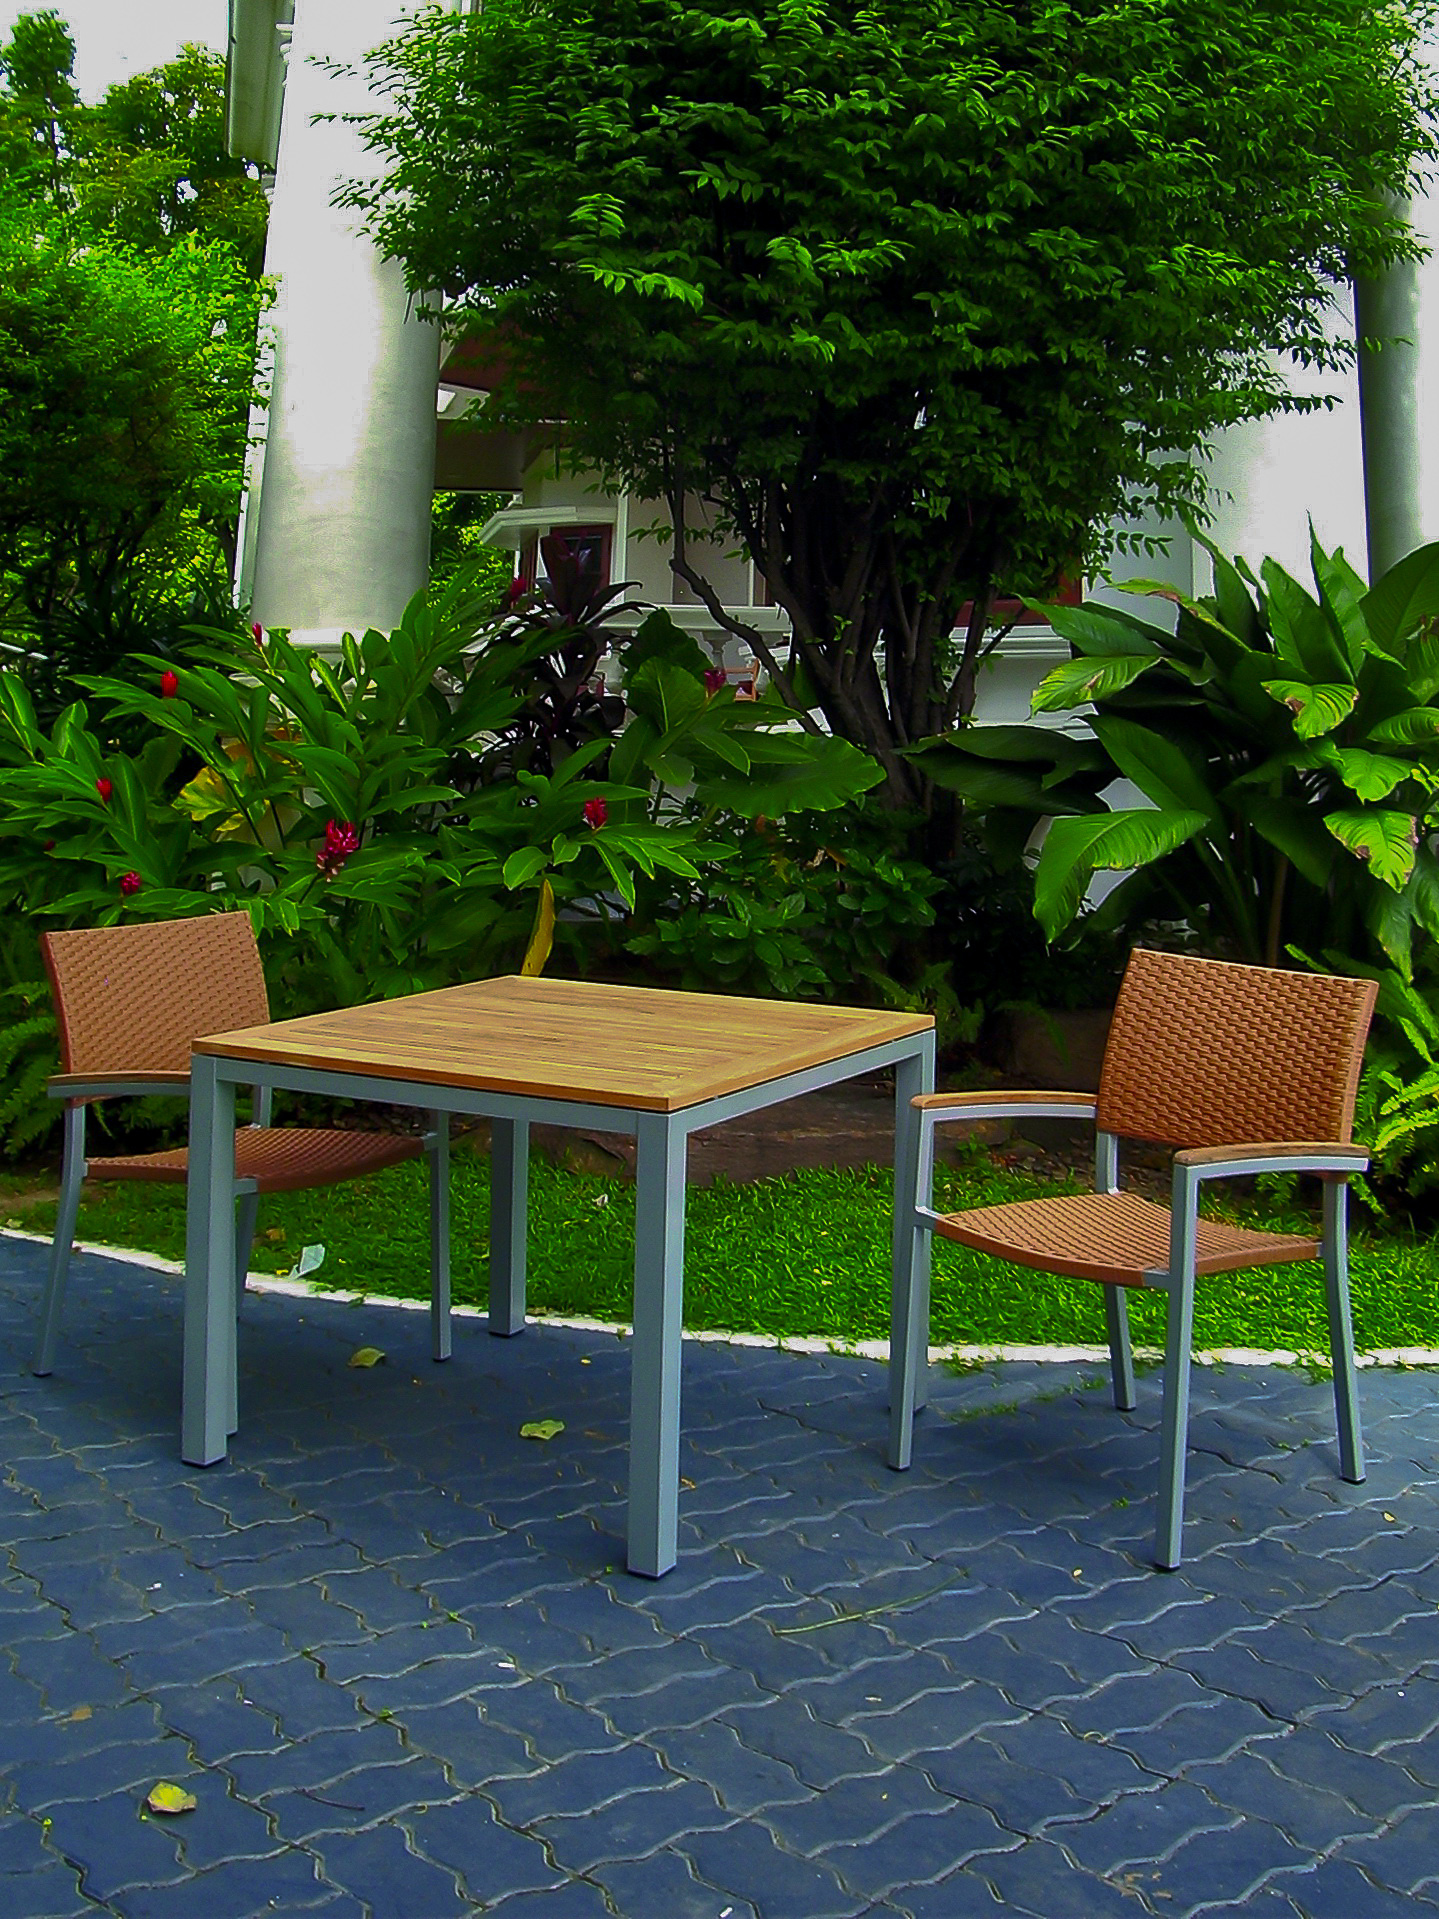 Core Teak and Powder Coated Aluminum 4 top table and matching wicker Ultimate Chair copy.jpg